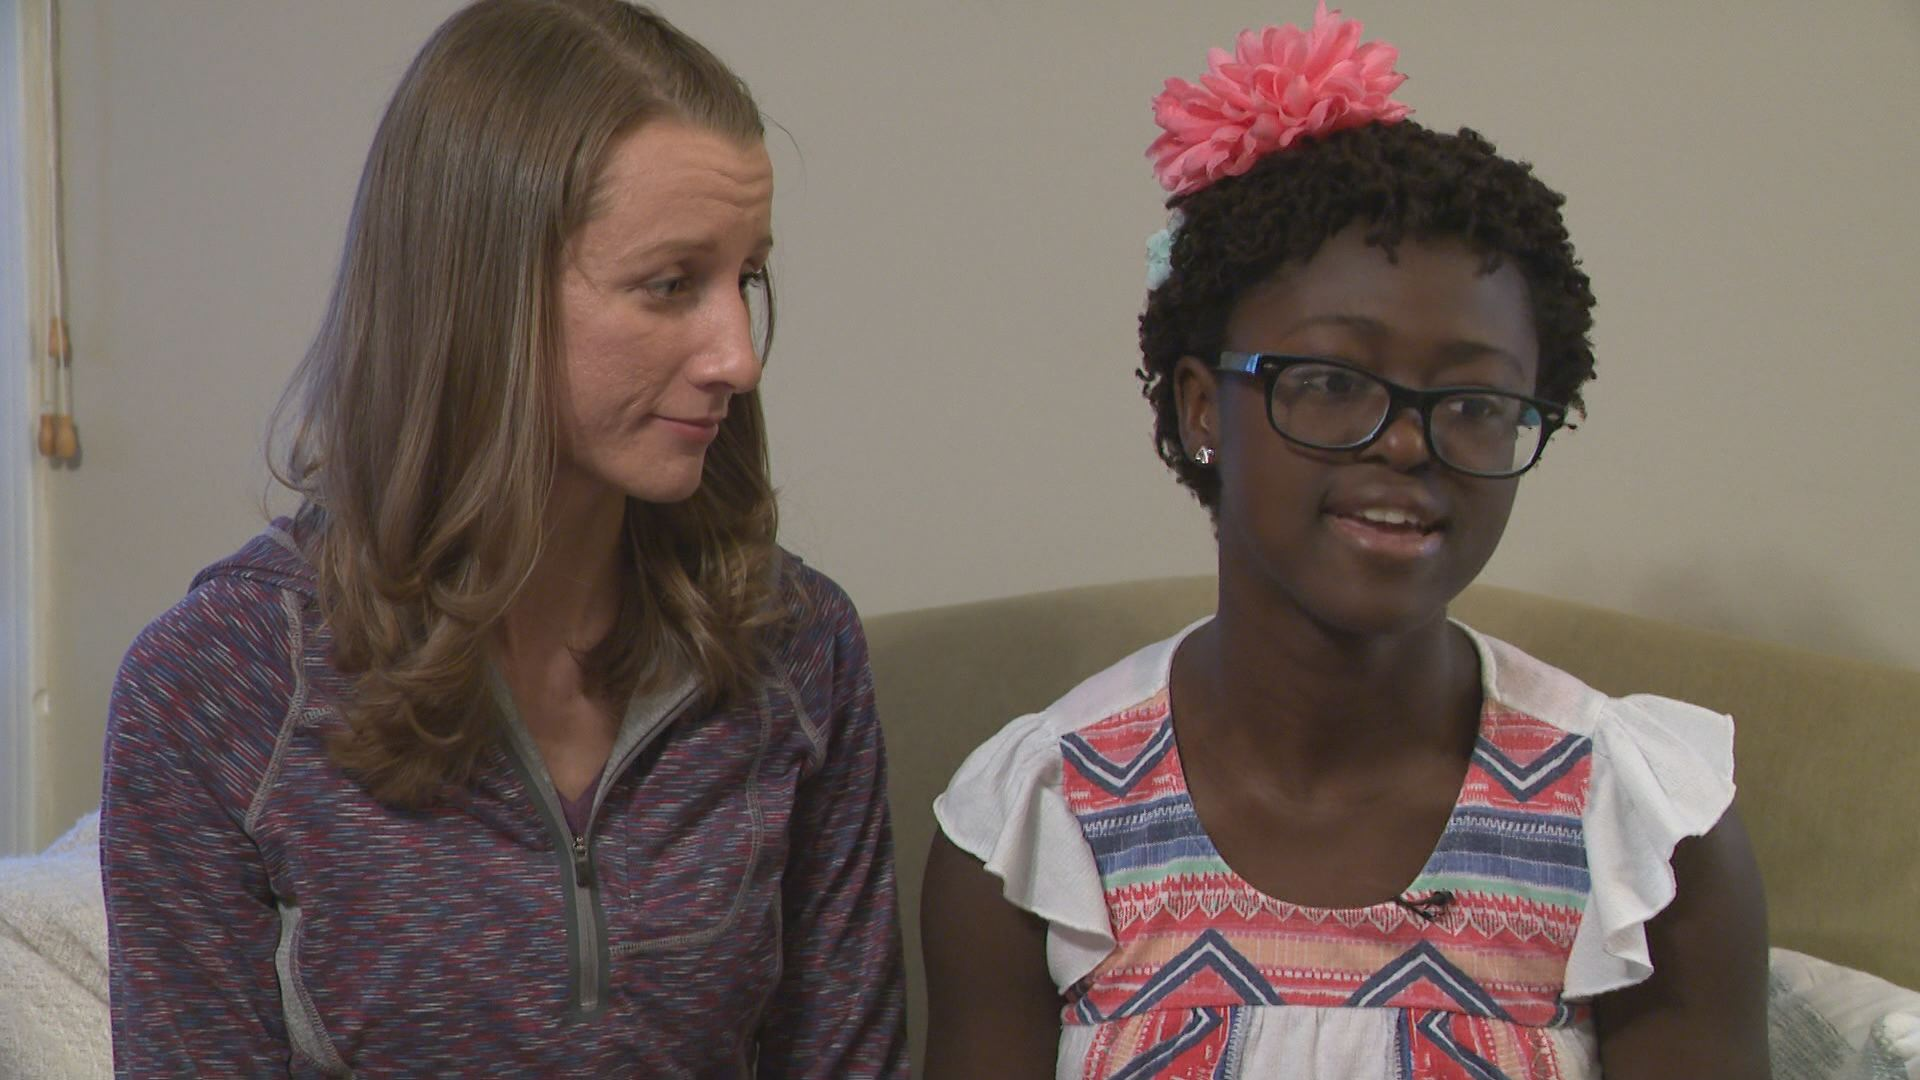 Elisabeth and her mother Andee // WSBT 22{ }